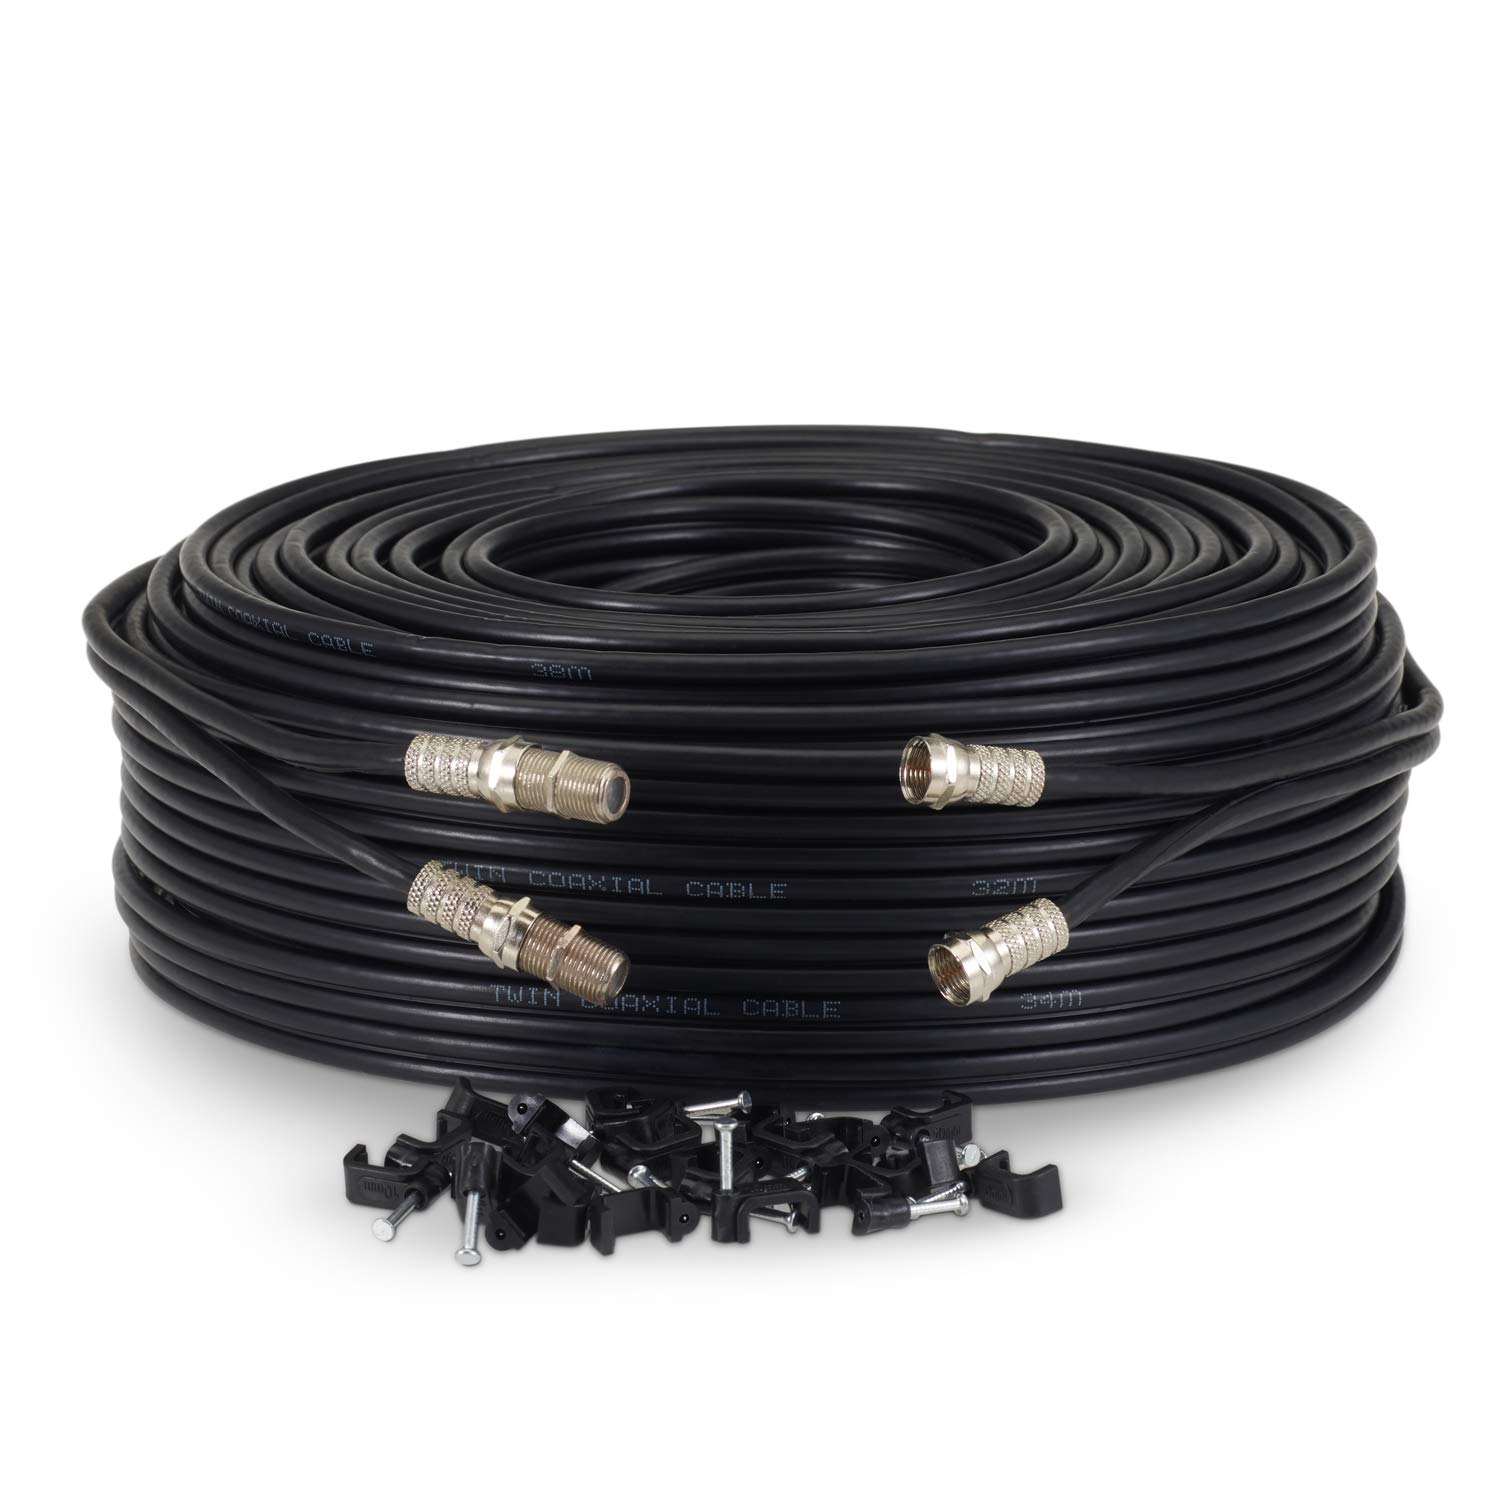 10 Meter, Black Sky Satellites 10 m Twin Satellite Shotgun Coax Cable Extension Kit with Fitted F Connectors for Sky HD Q and Freesat Black